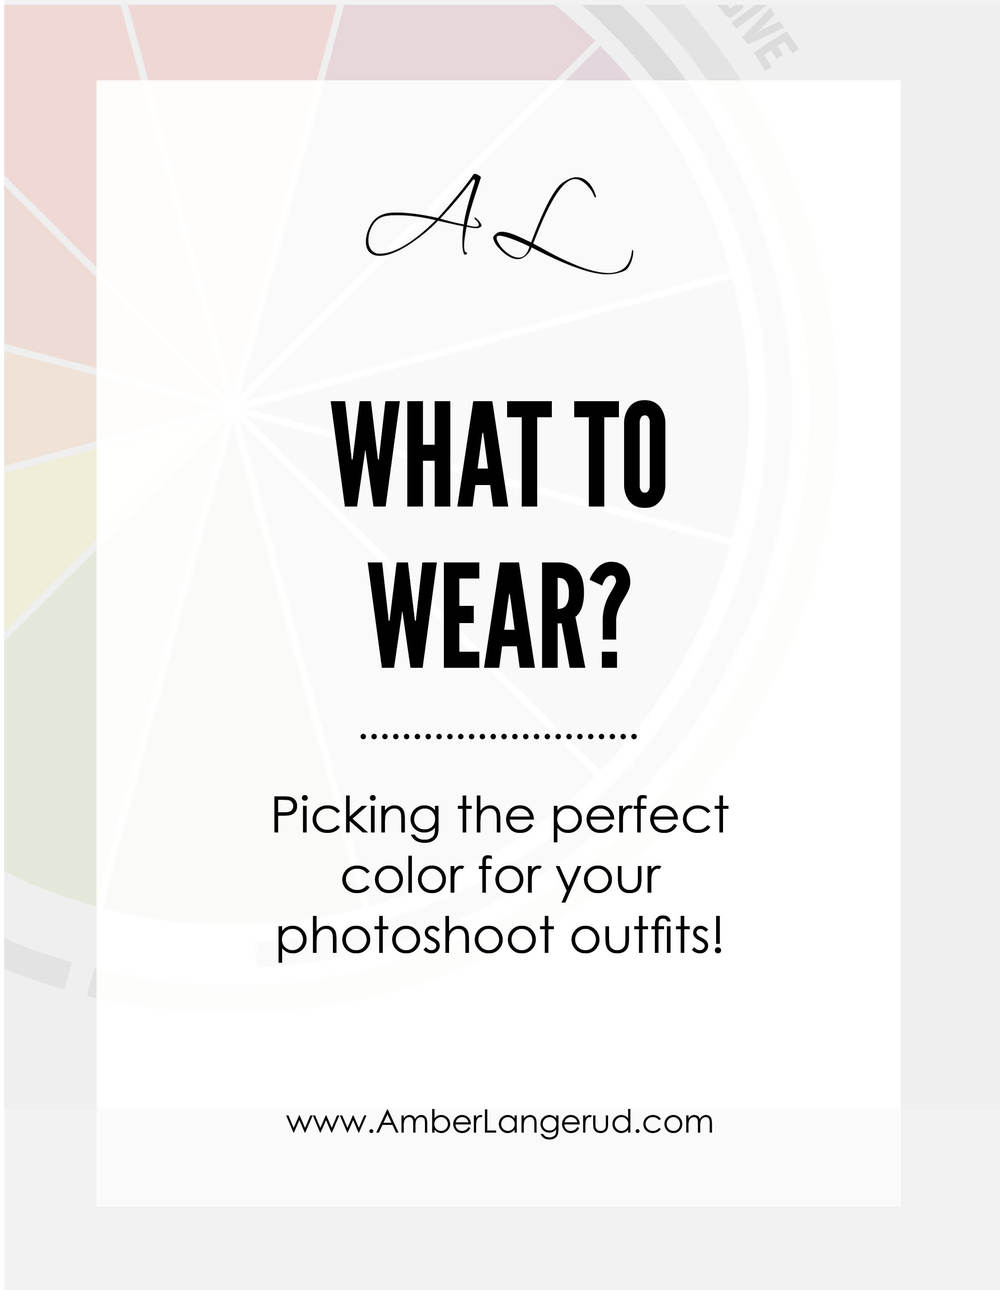 Picking the perfect color outfits for your high school senior or engagement pictures!!